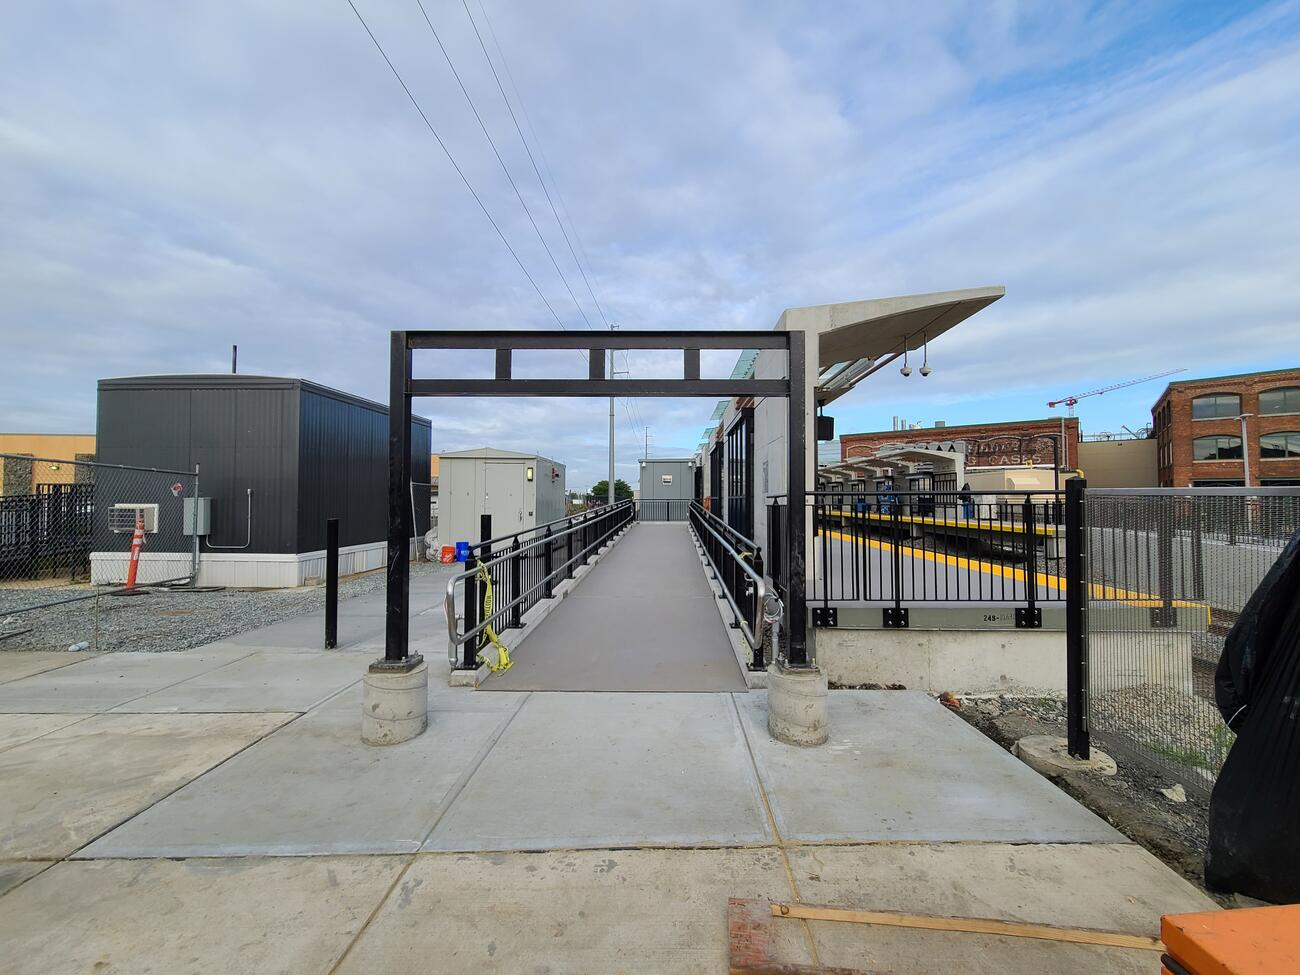 At center is a ramp leading from the Silver Line stop up to the outbound Commuter Rail station platform. The ramp is open to the sky, but has handrails on both sides.